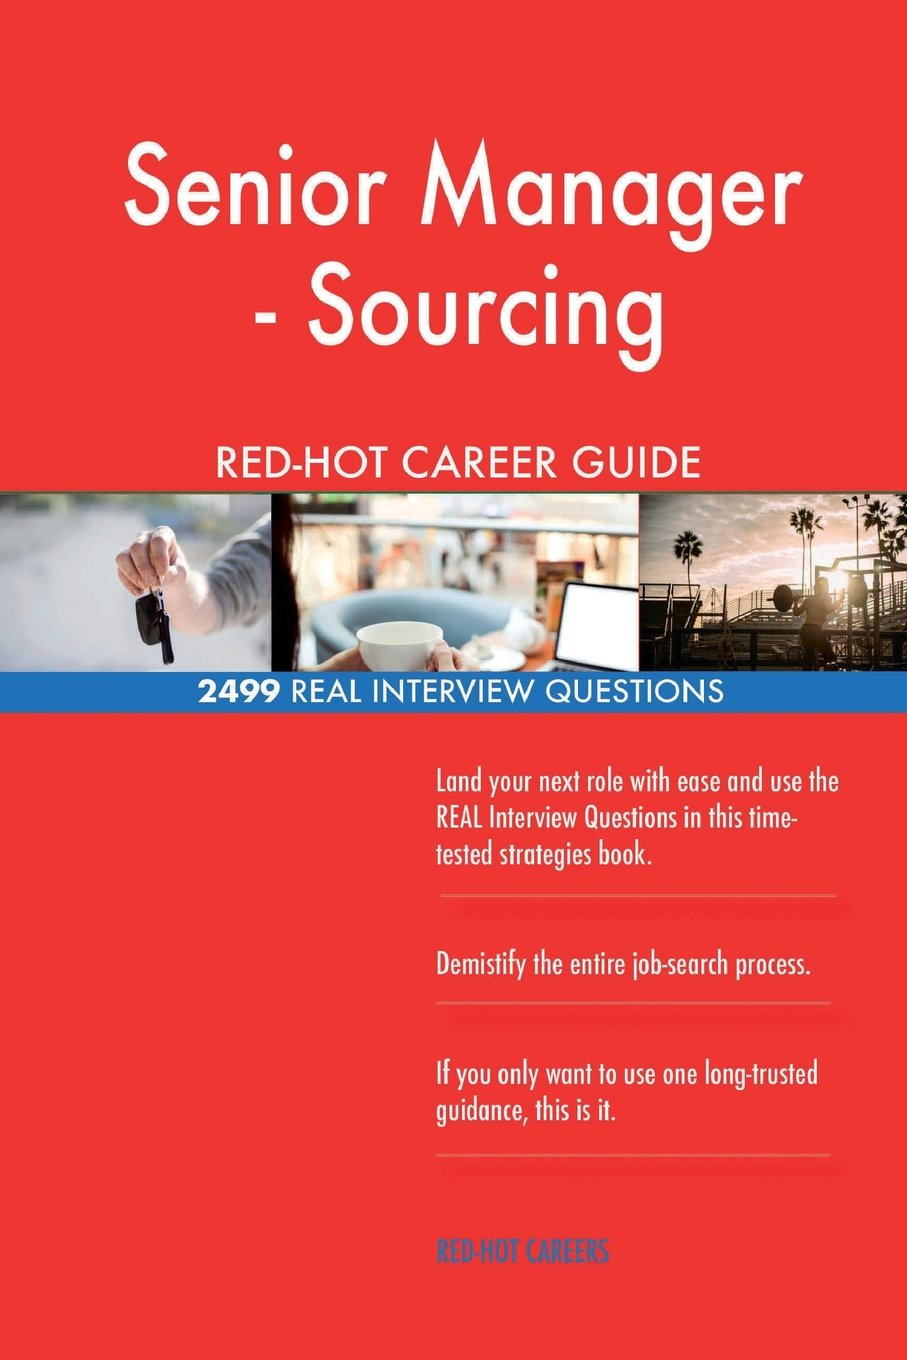 Senior Manager - Sourcing RED-HOT Career Guide